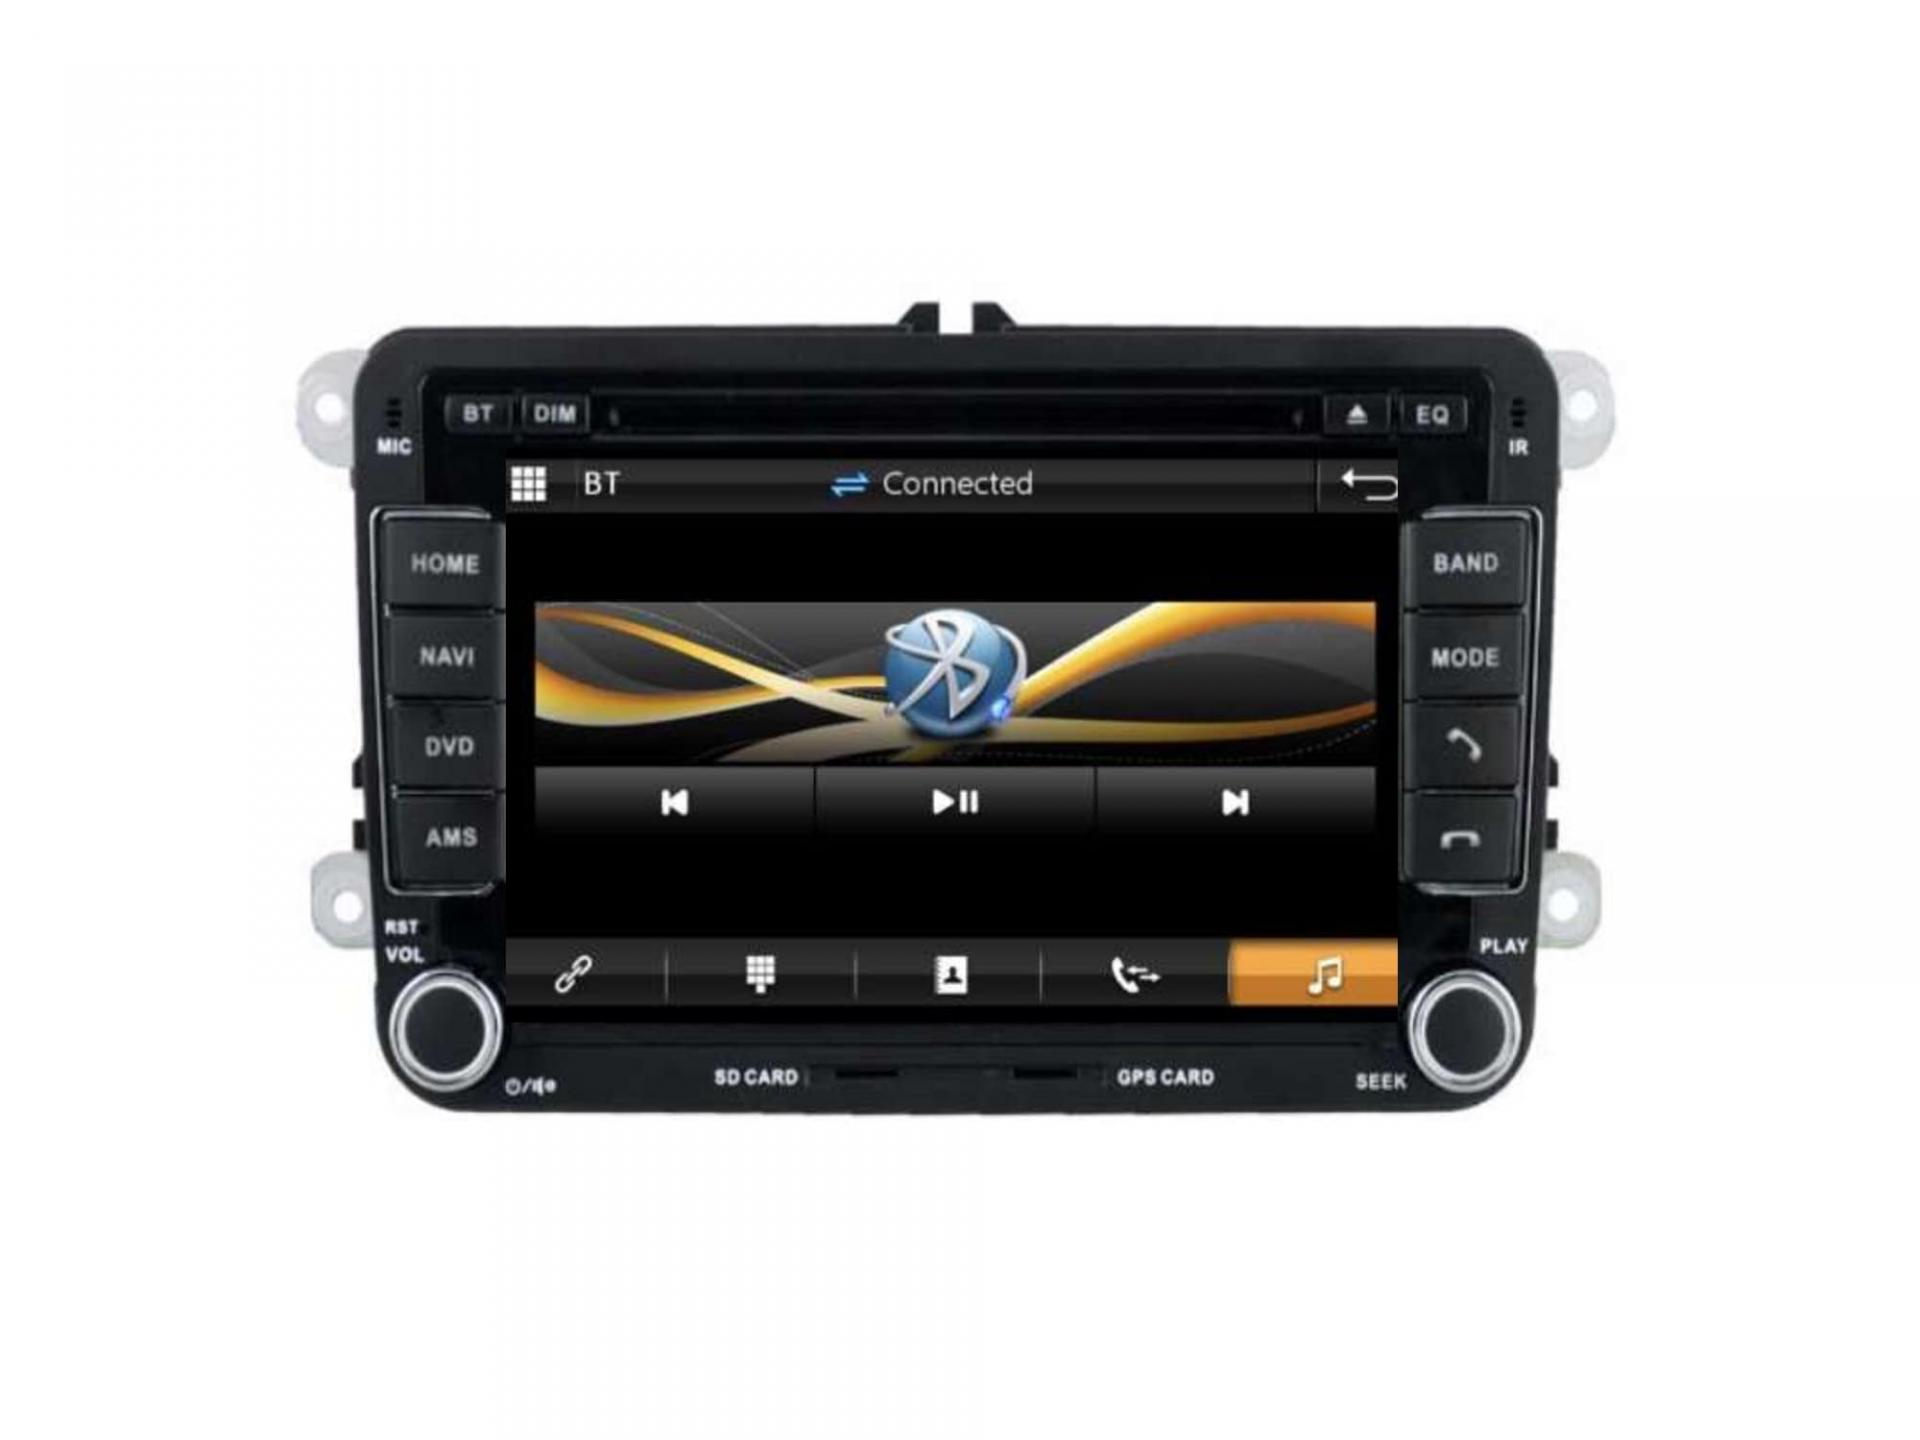 Autoradio gps carplay android auto bluetooth vw golf 5 6 touran tiguan passat transporter t5 t6 polo scirocco beetle eos 1